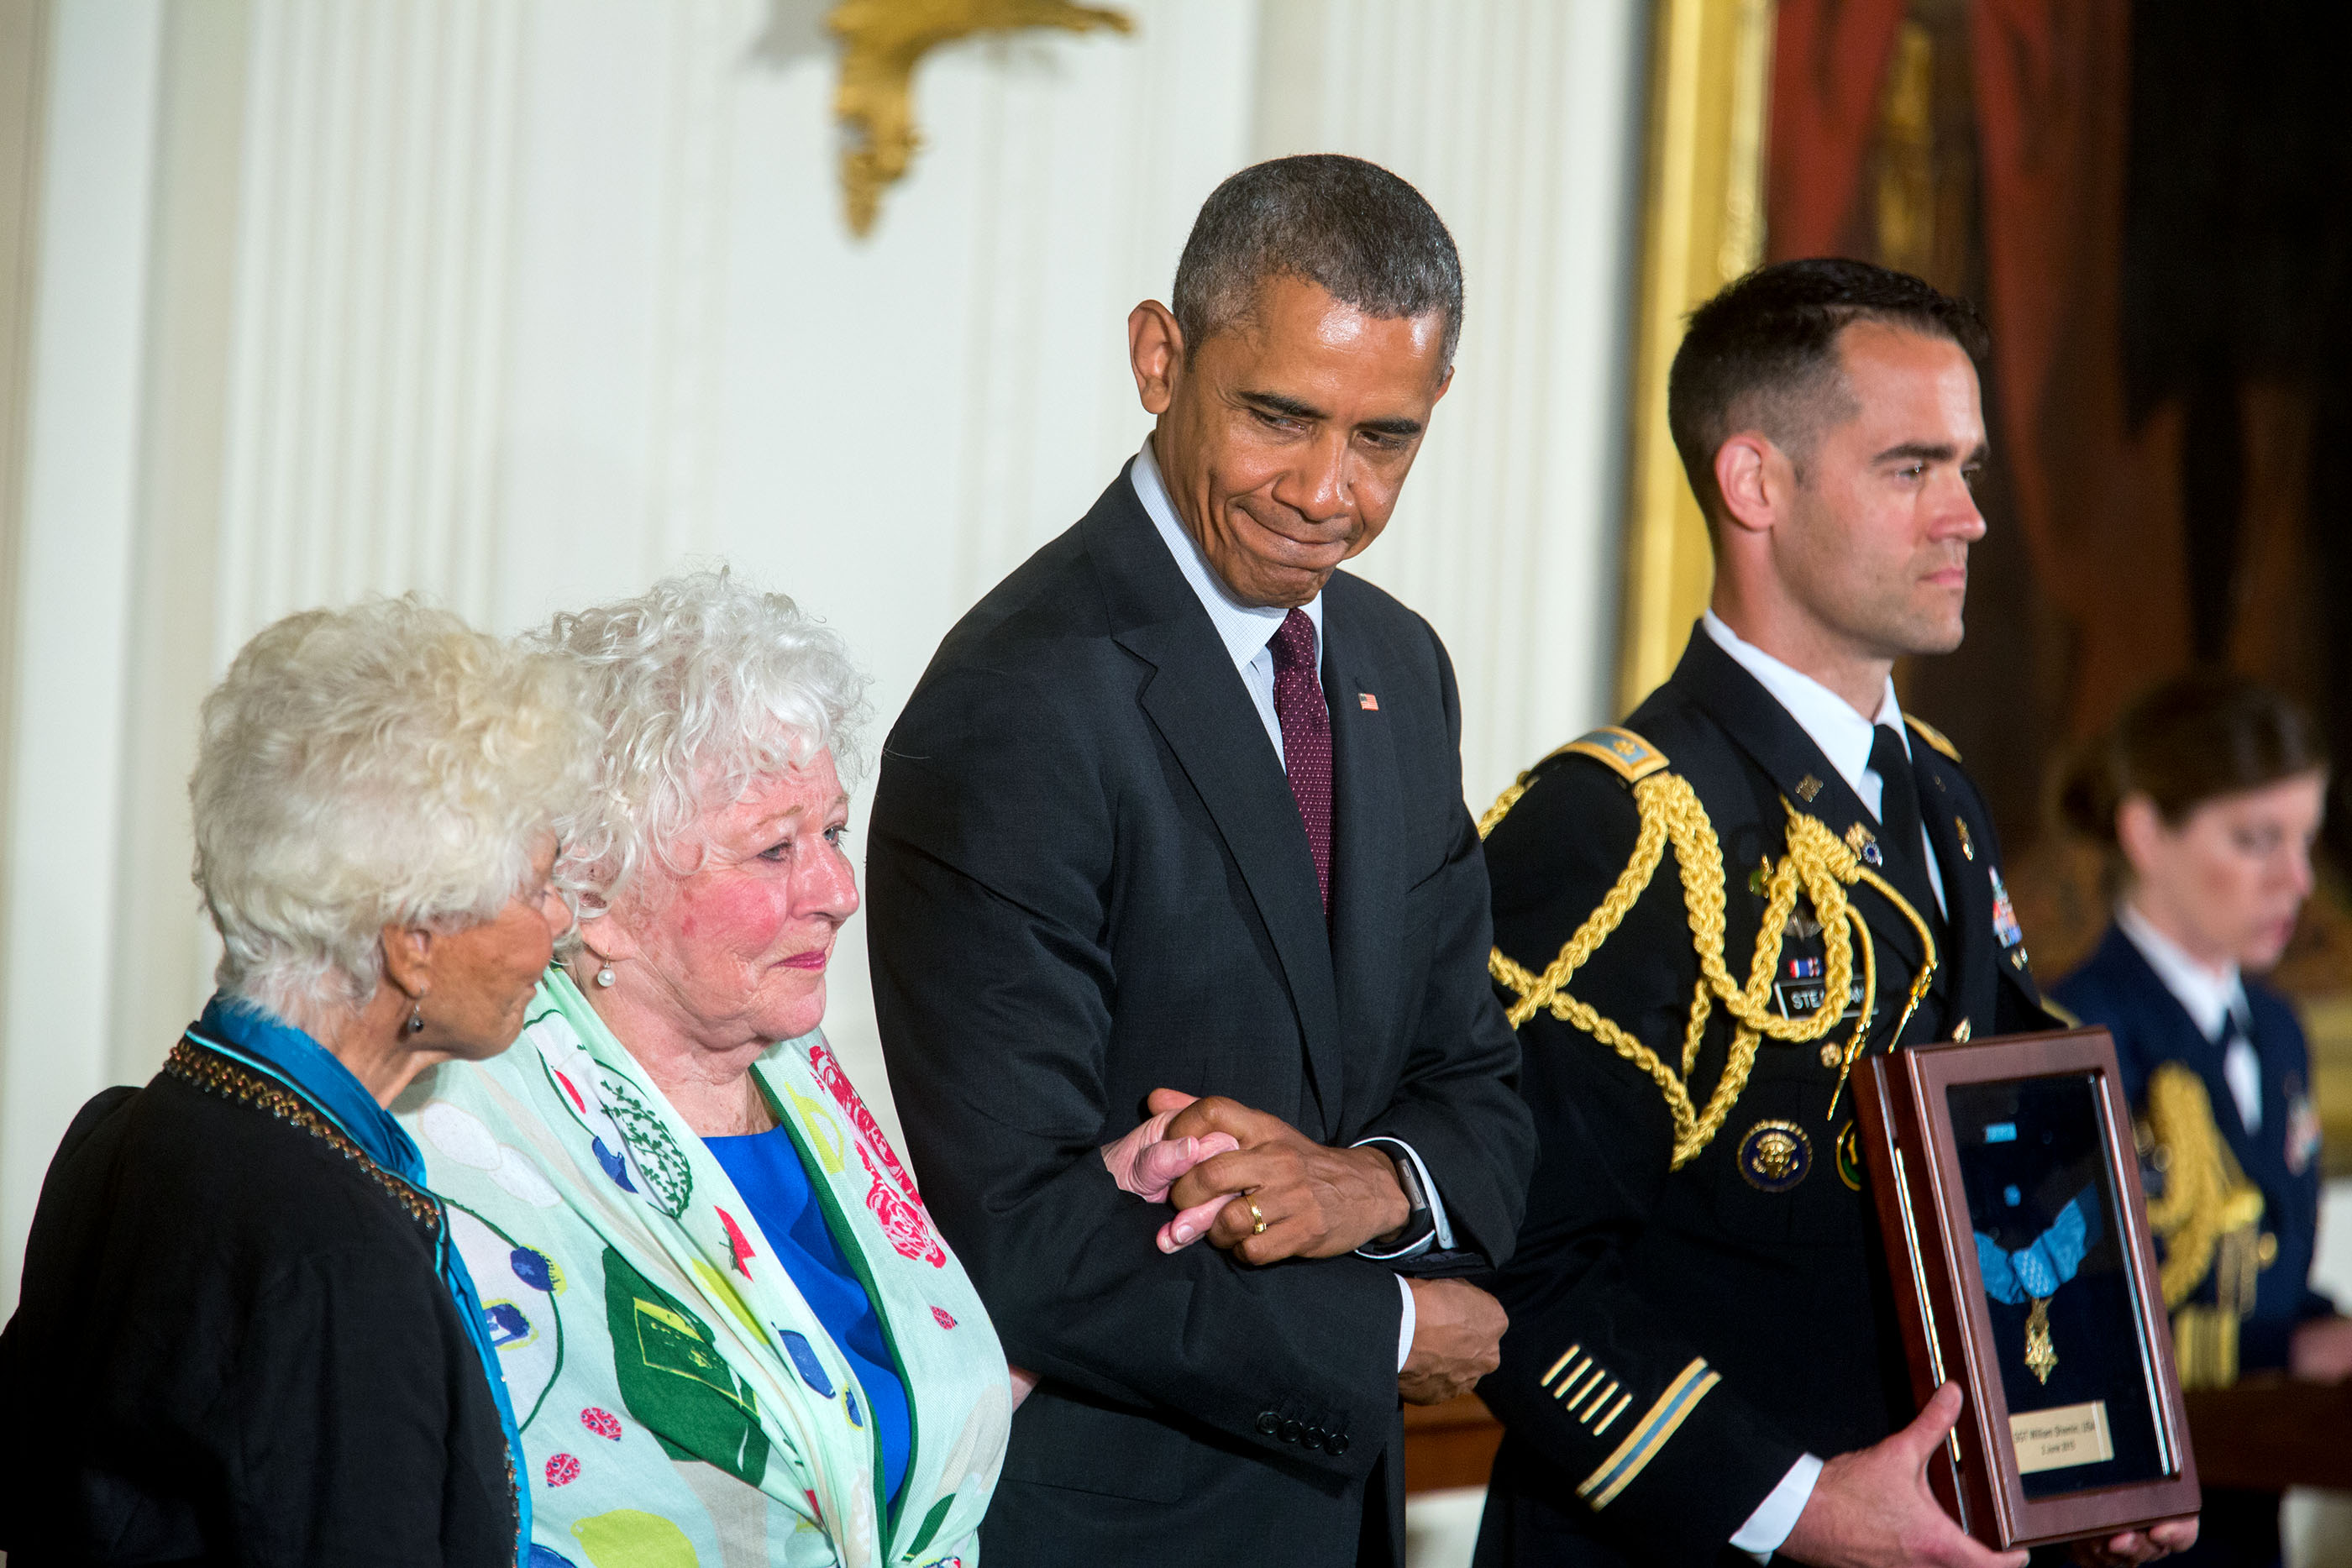 President Barack Obama stands with Ina Judith Bass (left) and Elise Shemin-Roth as the citation is read awarding the Medal of Honor posthumously to their father, Army Sergeant William Shemin, for conspicuous gallantry during World War I, at a ceremony in